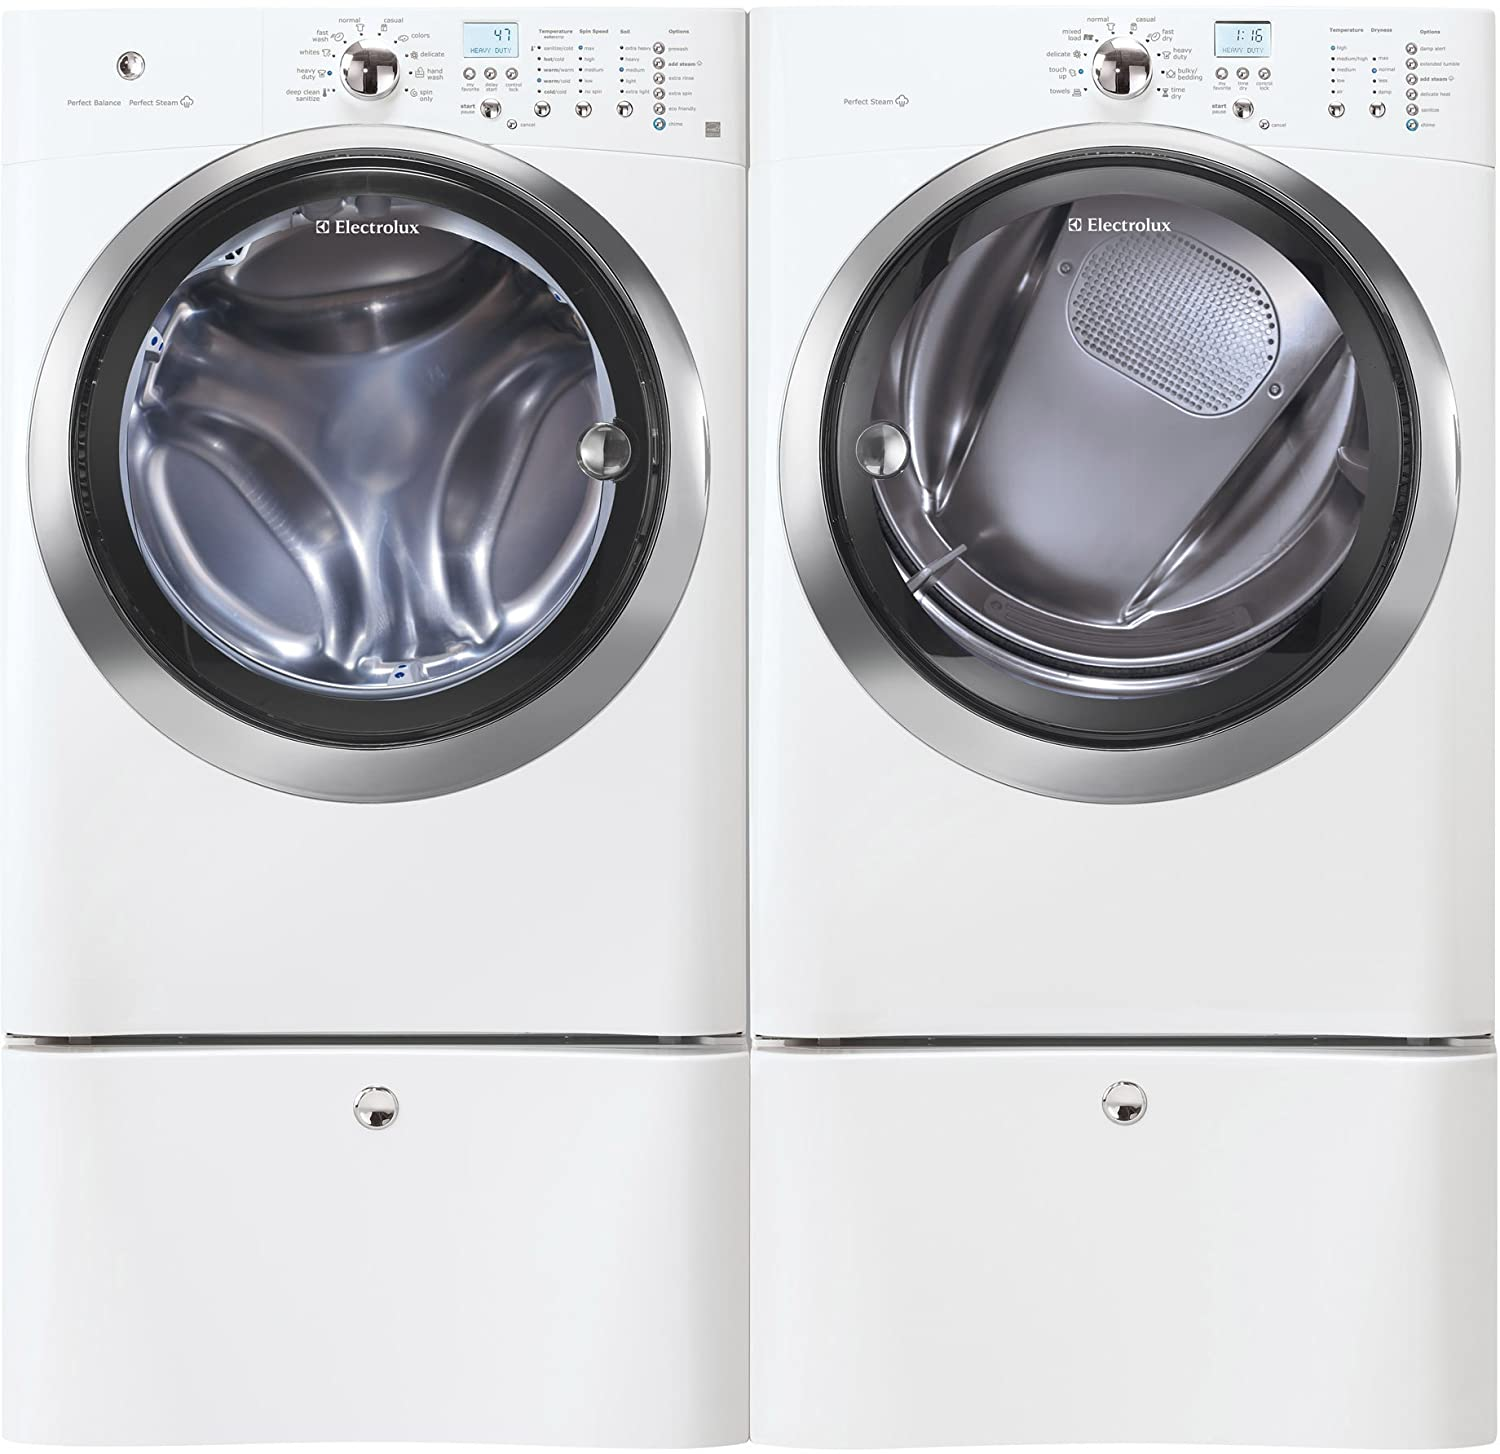 appliances pedestal washers luxury drawers dryers open zm electrolux drawer qv touch featuring glide